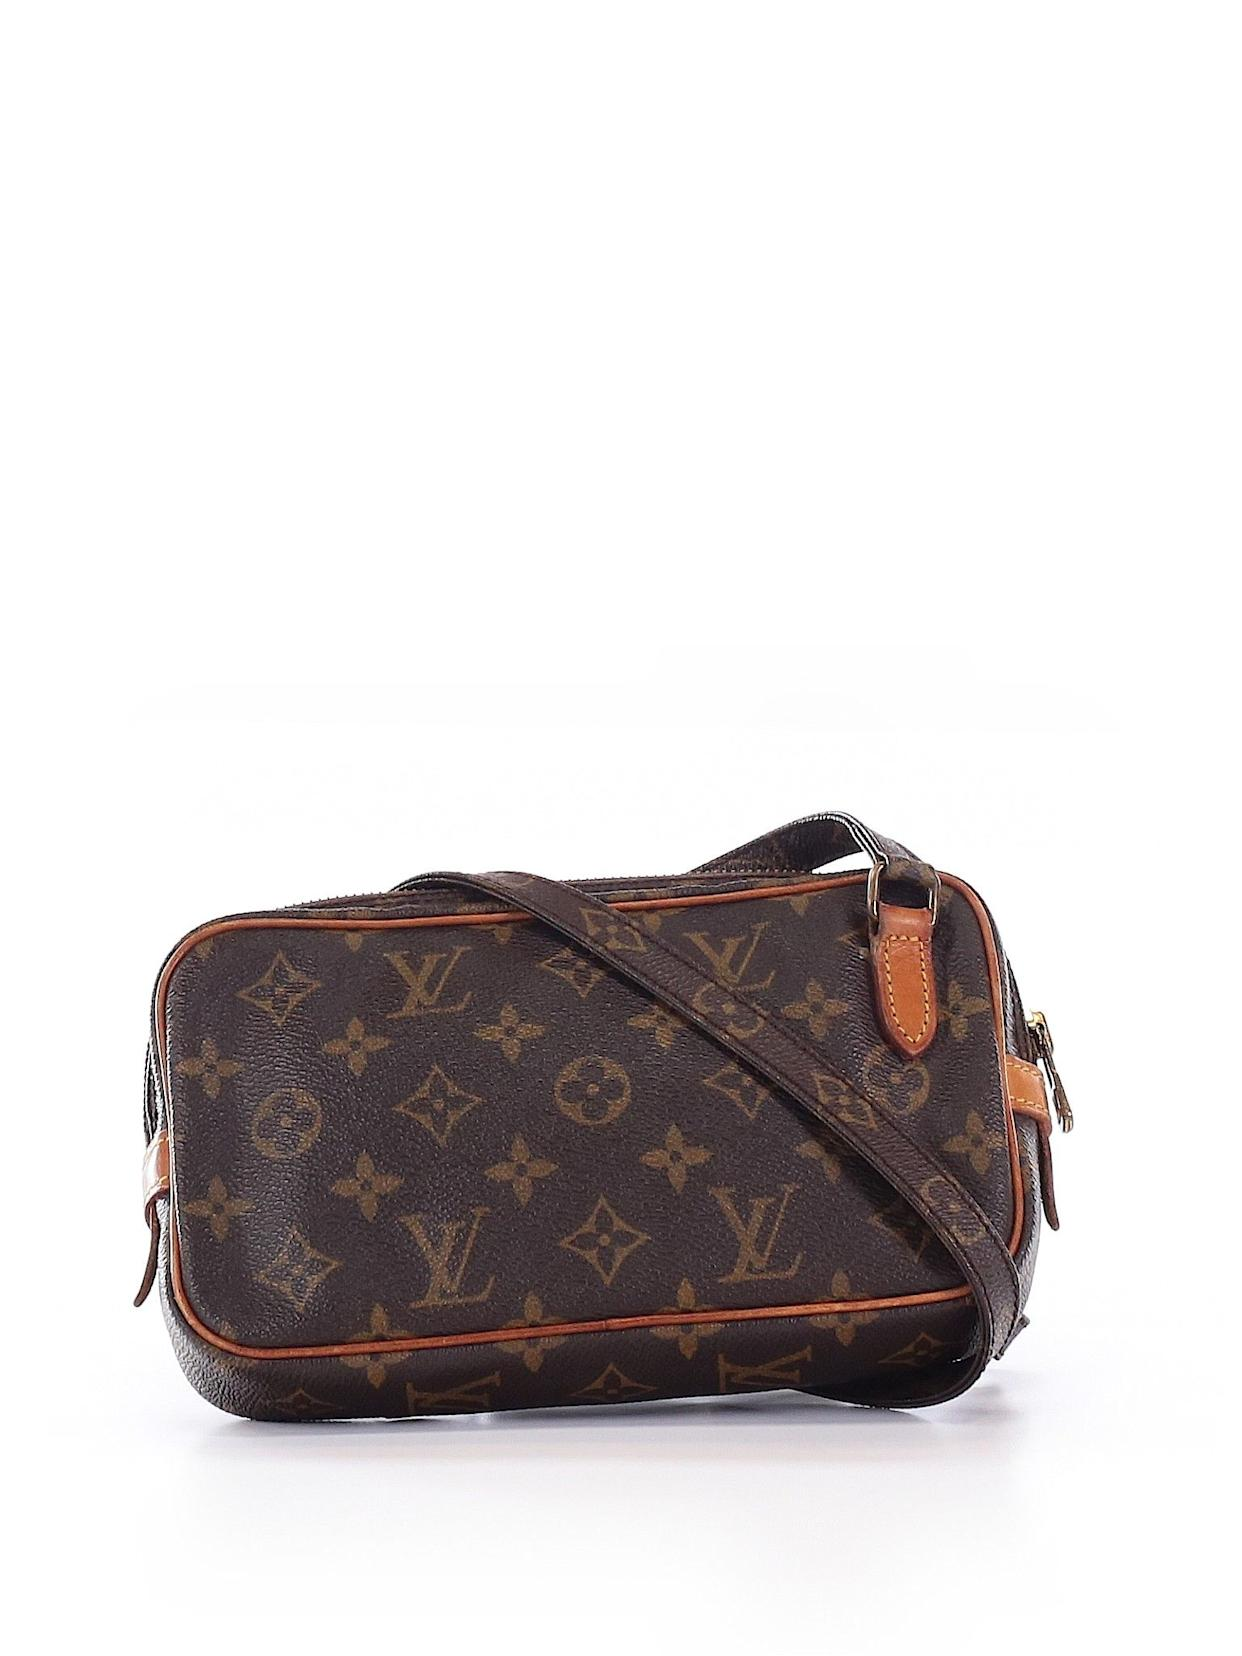 Experts Guide To Buying An Authentic Louis Vuitton Handbag >> Everything You Need To Know About Buying A Louis Vuitton Bag